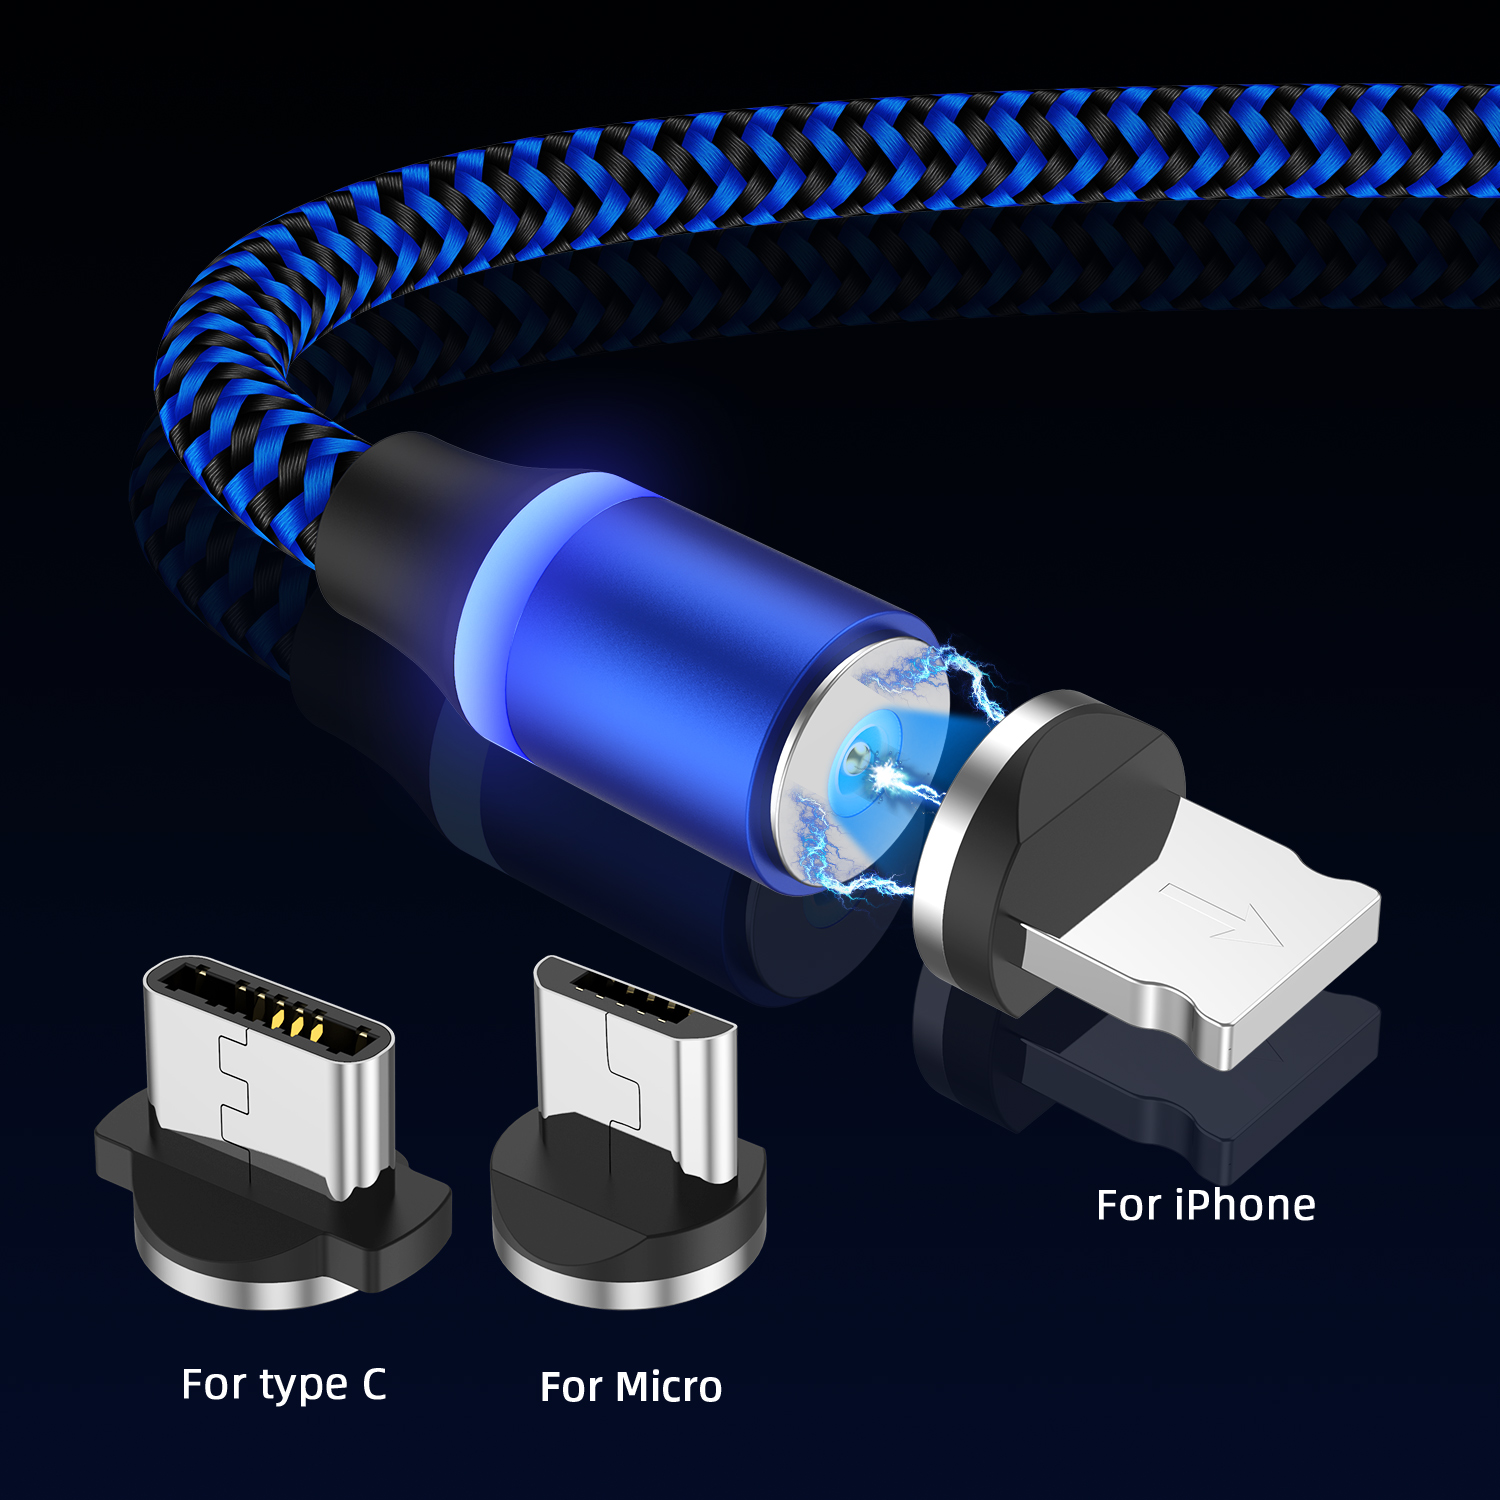 Tkey Micro USB Type C Cable LED For iphone Samsung Magnetic Fast Charging Date Wire Cord Magnet Charger Mobile Phone Cable